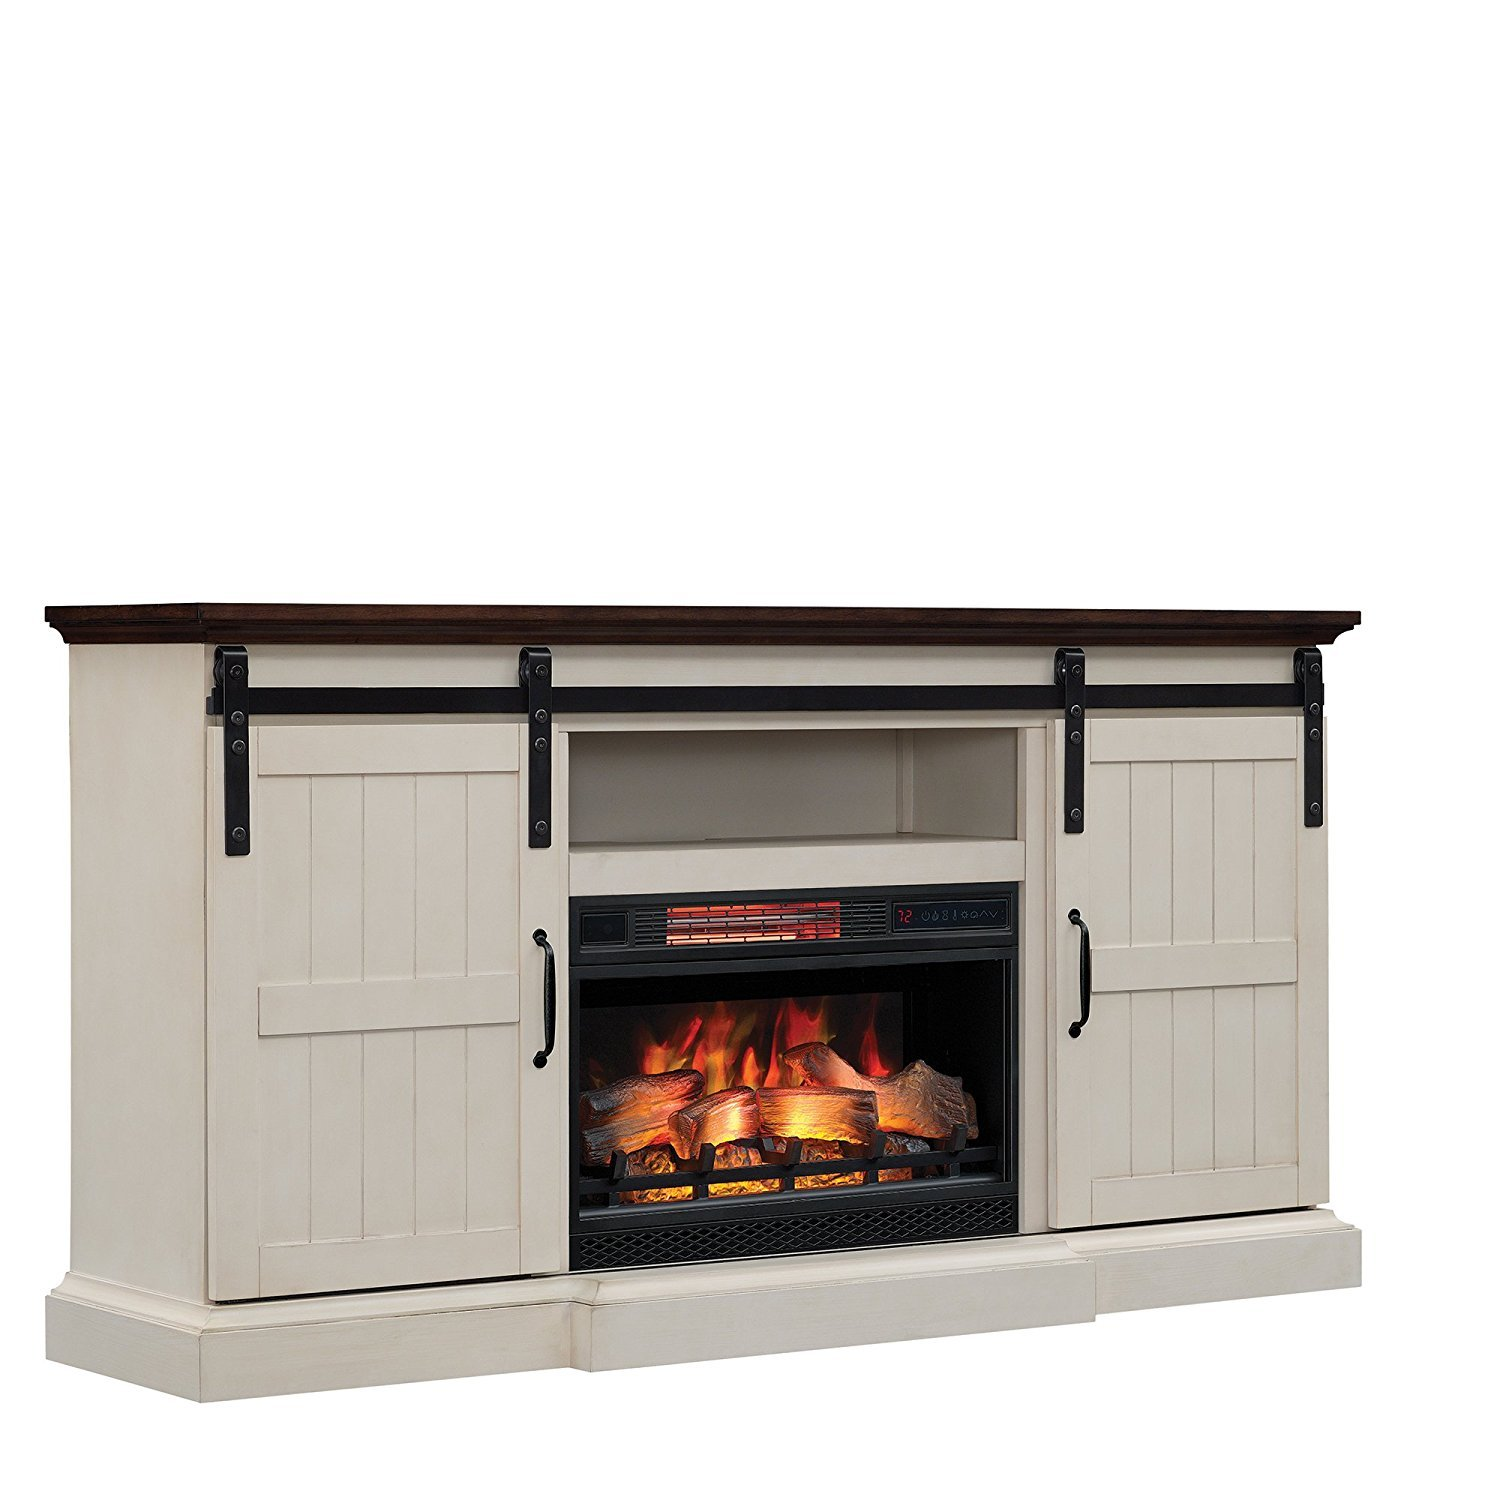 Sensational Hogan Electric Fireplace Tv Stand With Logset Weathered White Interior Design Ideas Gentotthenellocom